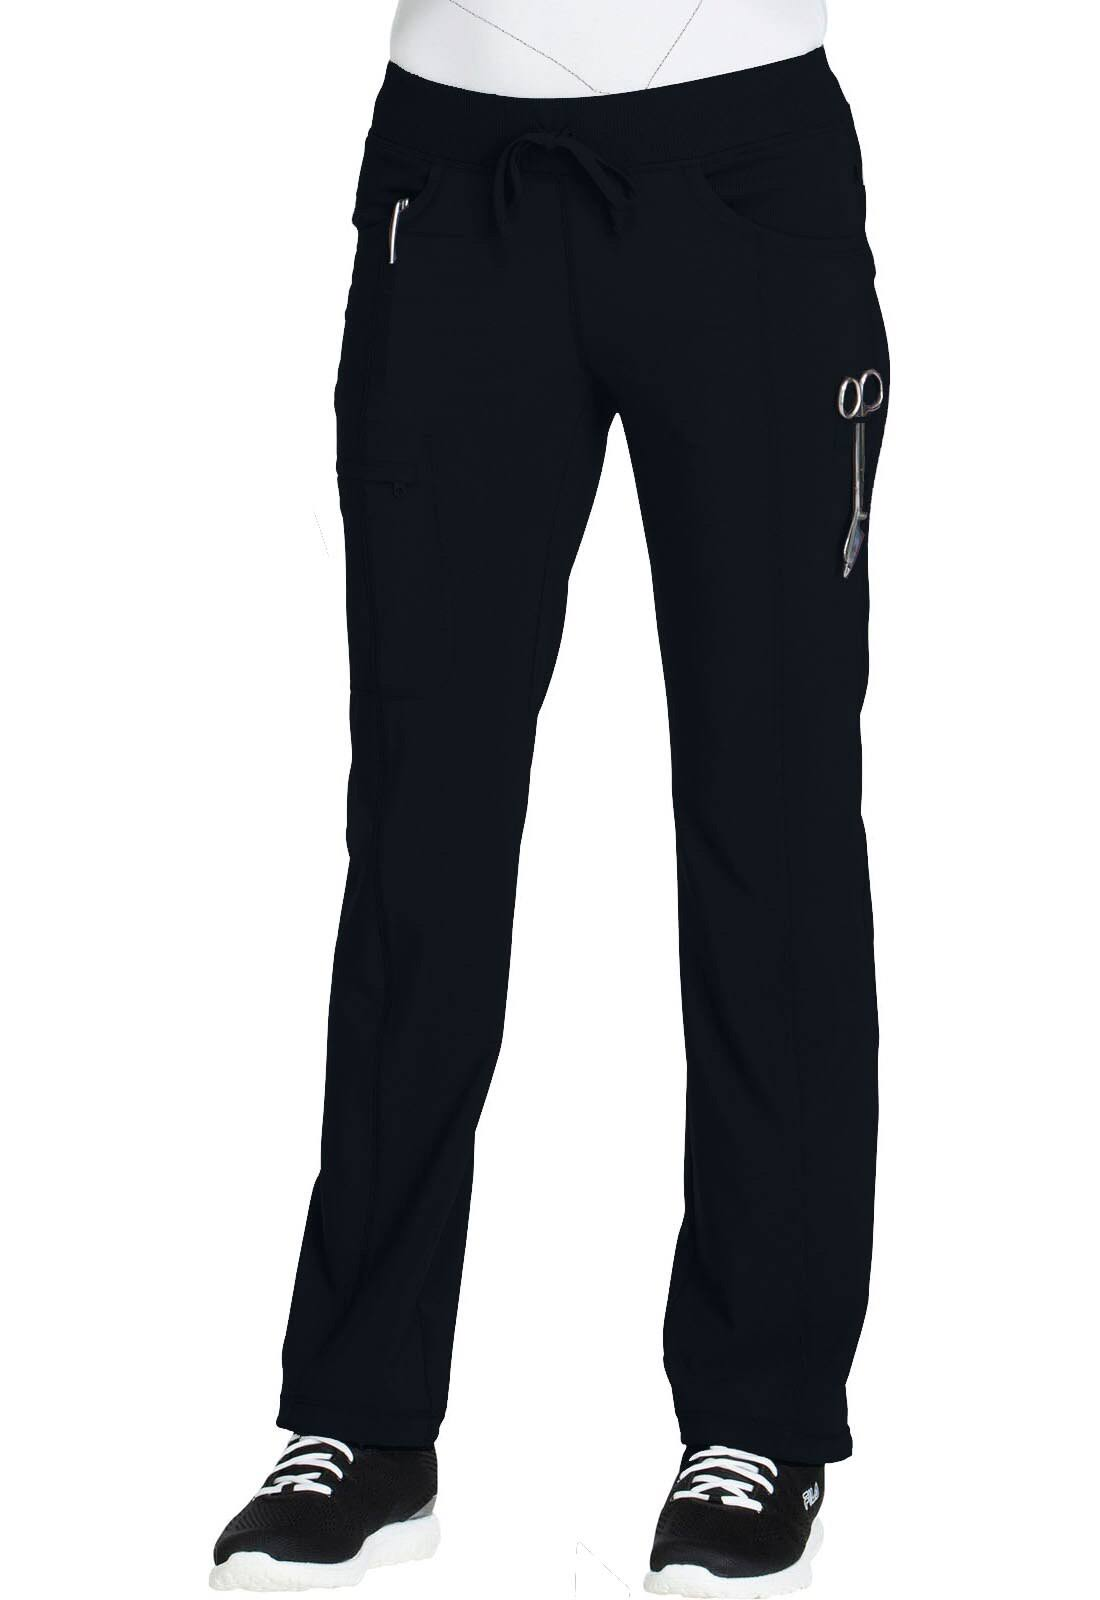 Cherokee Women's Infinity Low Rise Straight Leg Drawstring Pants - Black, Medium